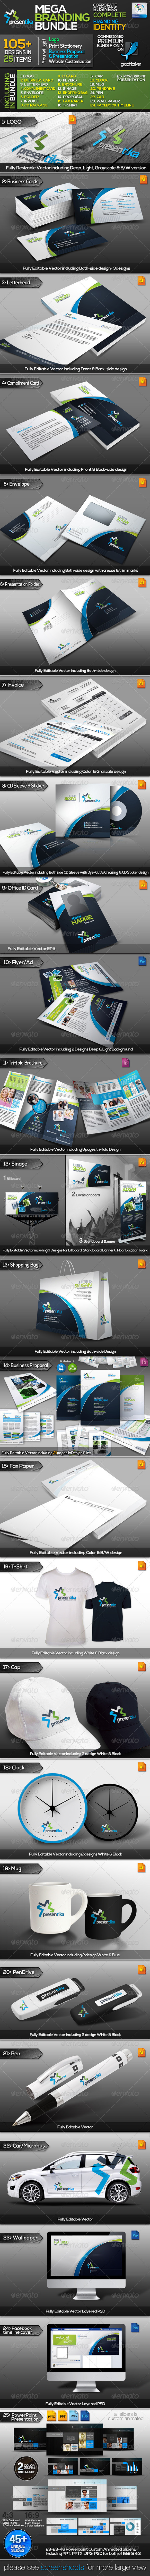 Great Corporate Business Identity Design Mega Branding Bundle